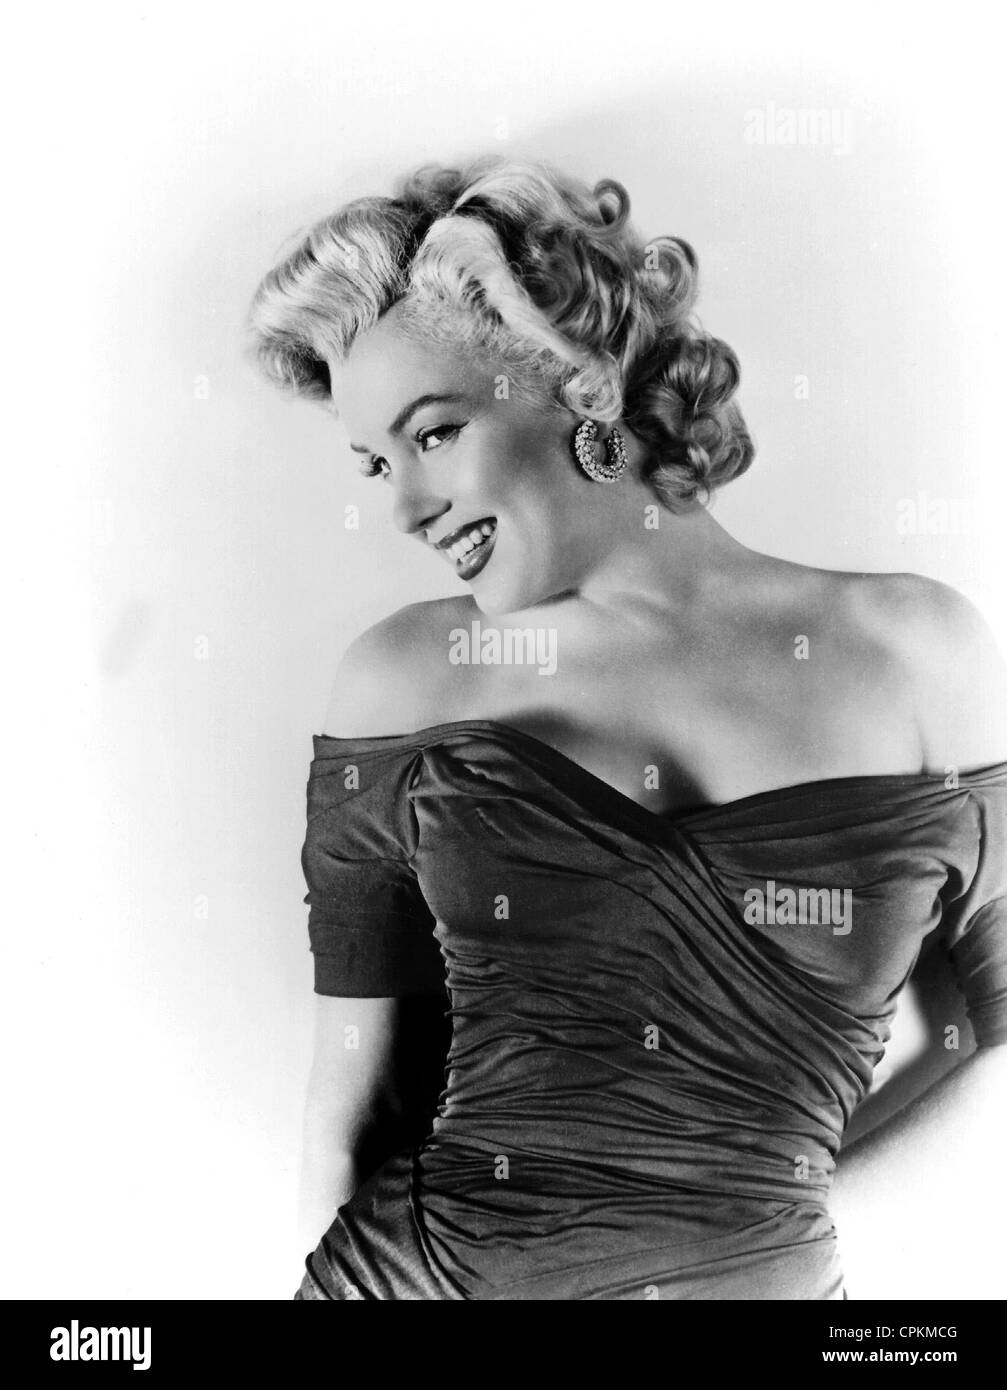 A color portrait of the film star Marilyn Monroe, pictured in 1957. She is smiling at the camera in this half body - Stock Image